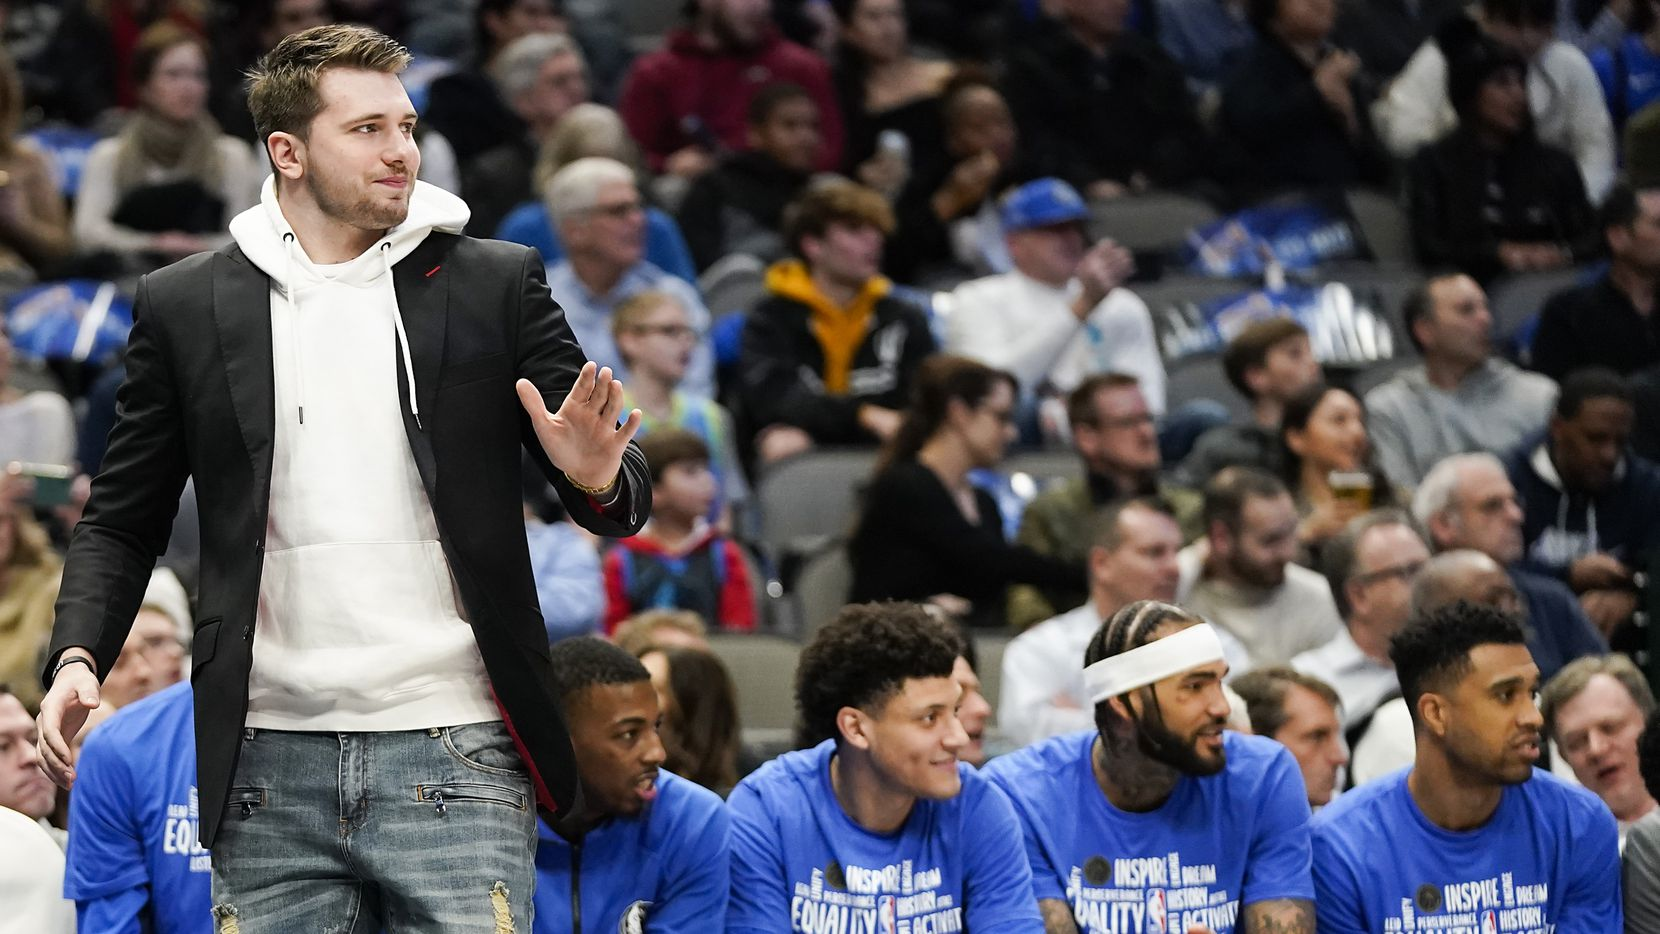 Injured Dallas Mavericks guard Luka Doncic watches from the sidelines in street clothes during the first half of an NBA basketball game against the Memphis Grizzlies at American Airlines Center on Wednesday, Feb. 5, 2020, in Dallas.